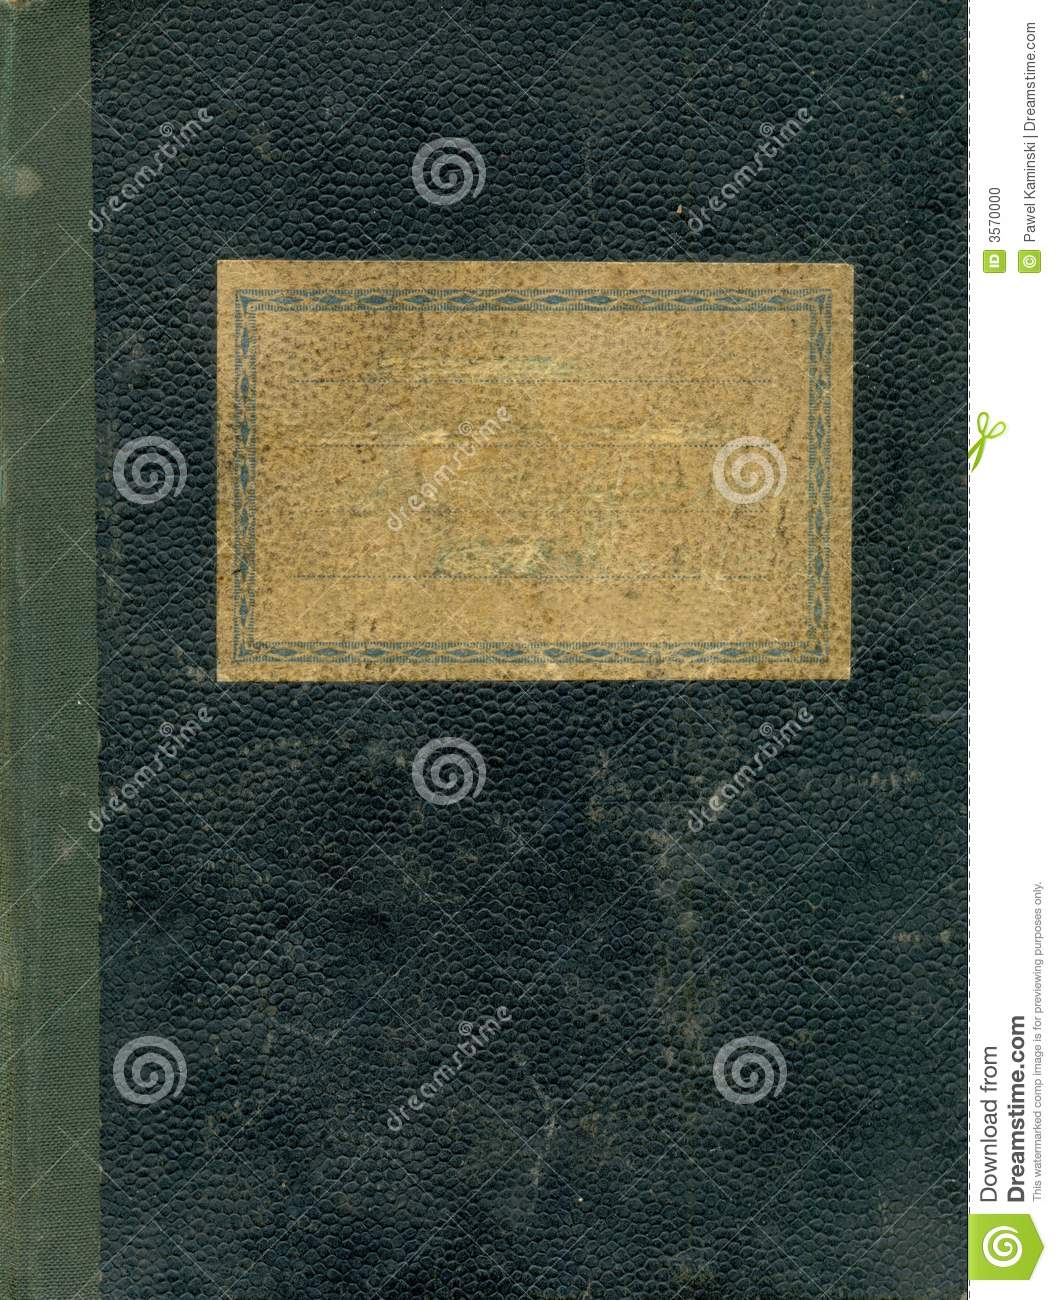 Vintage Book Cover Notebooks : Old notebook cover stock photo image of rough school